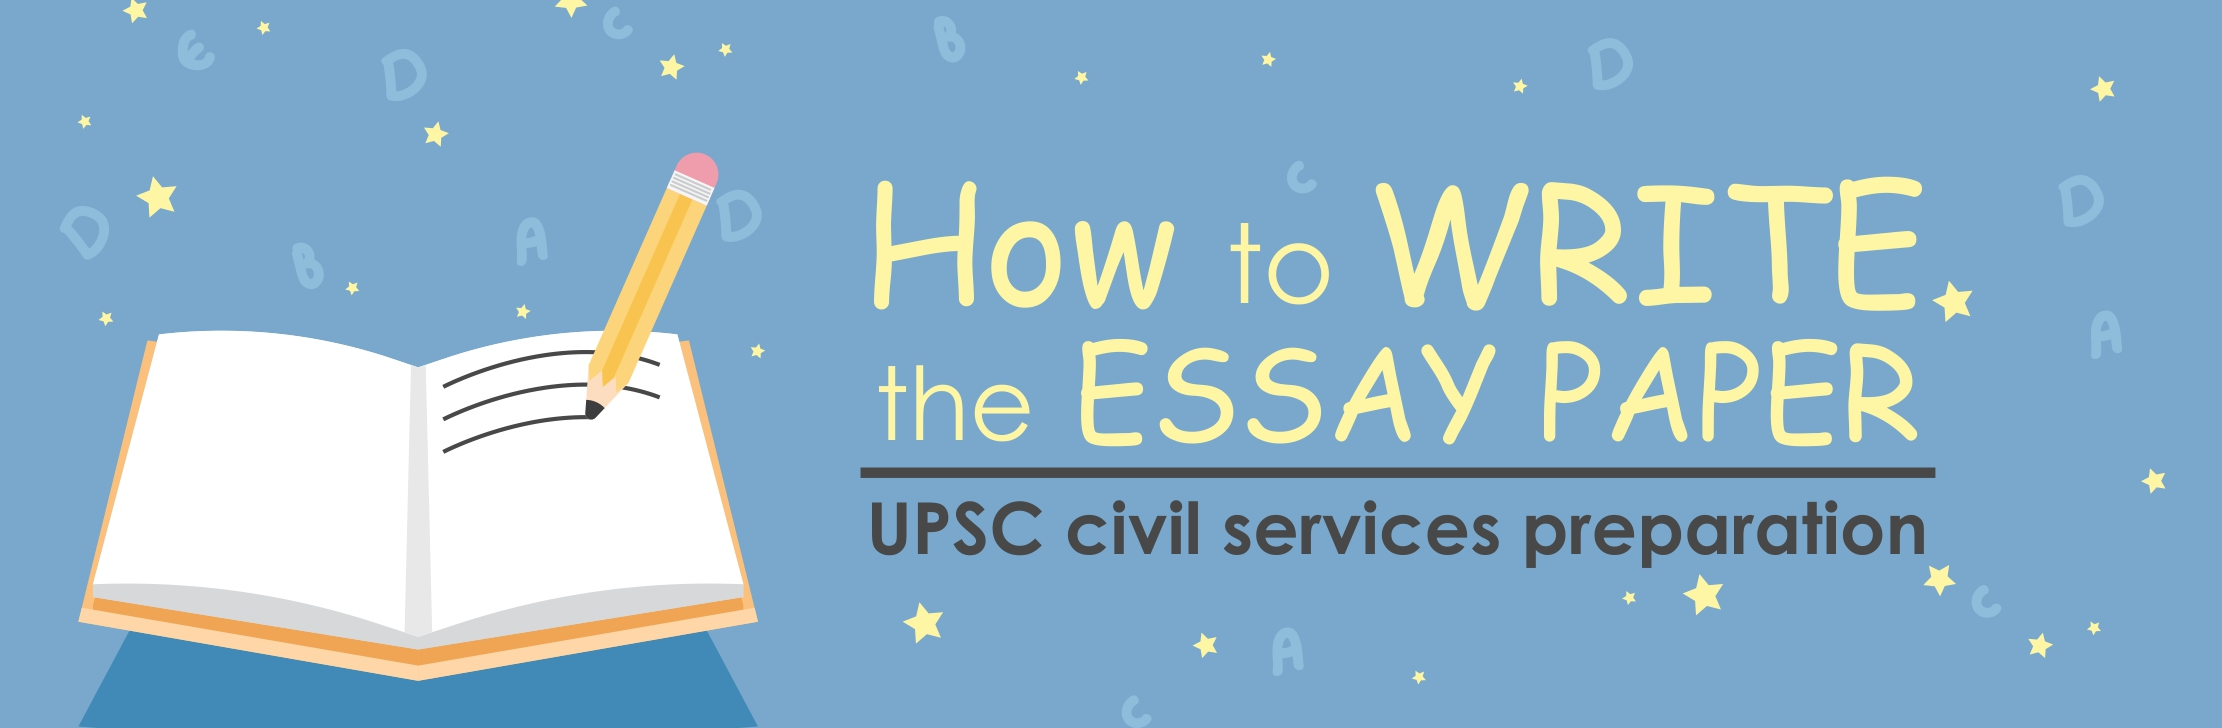 Civil service college writing dynamics